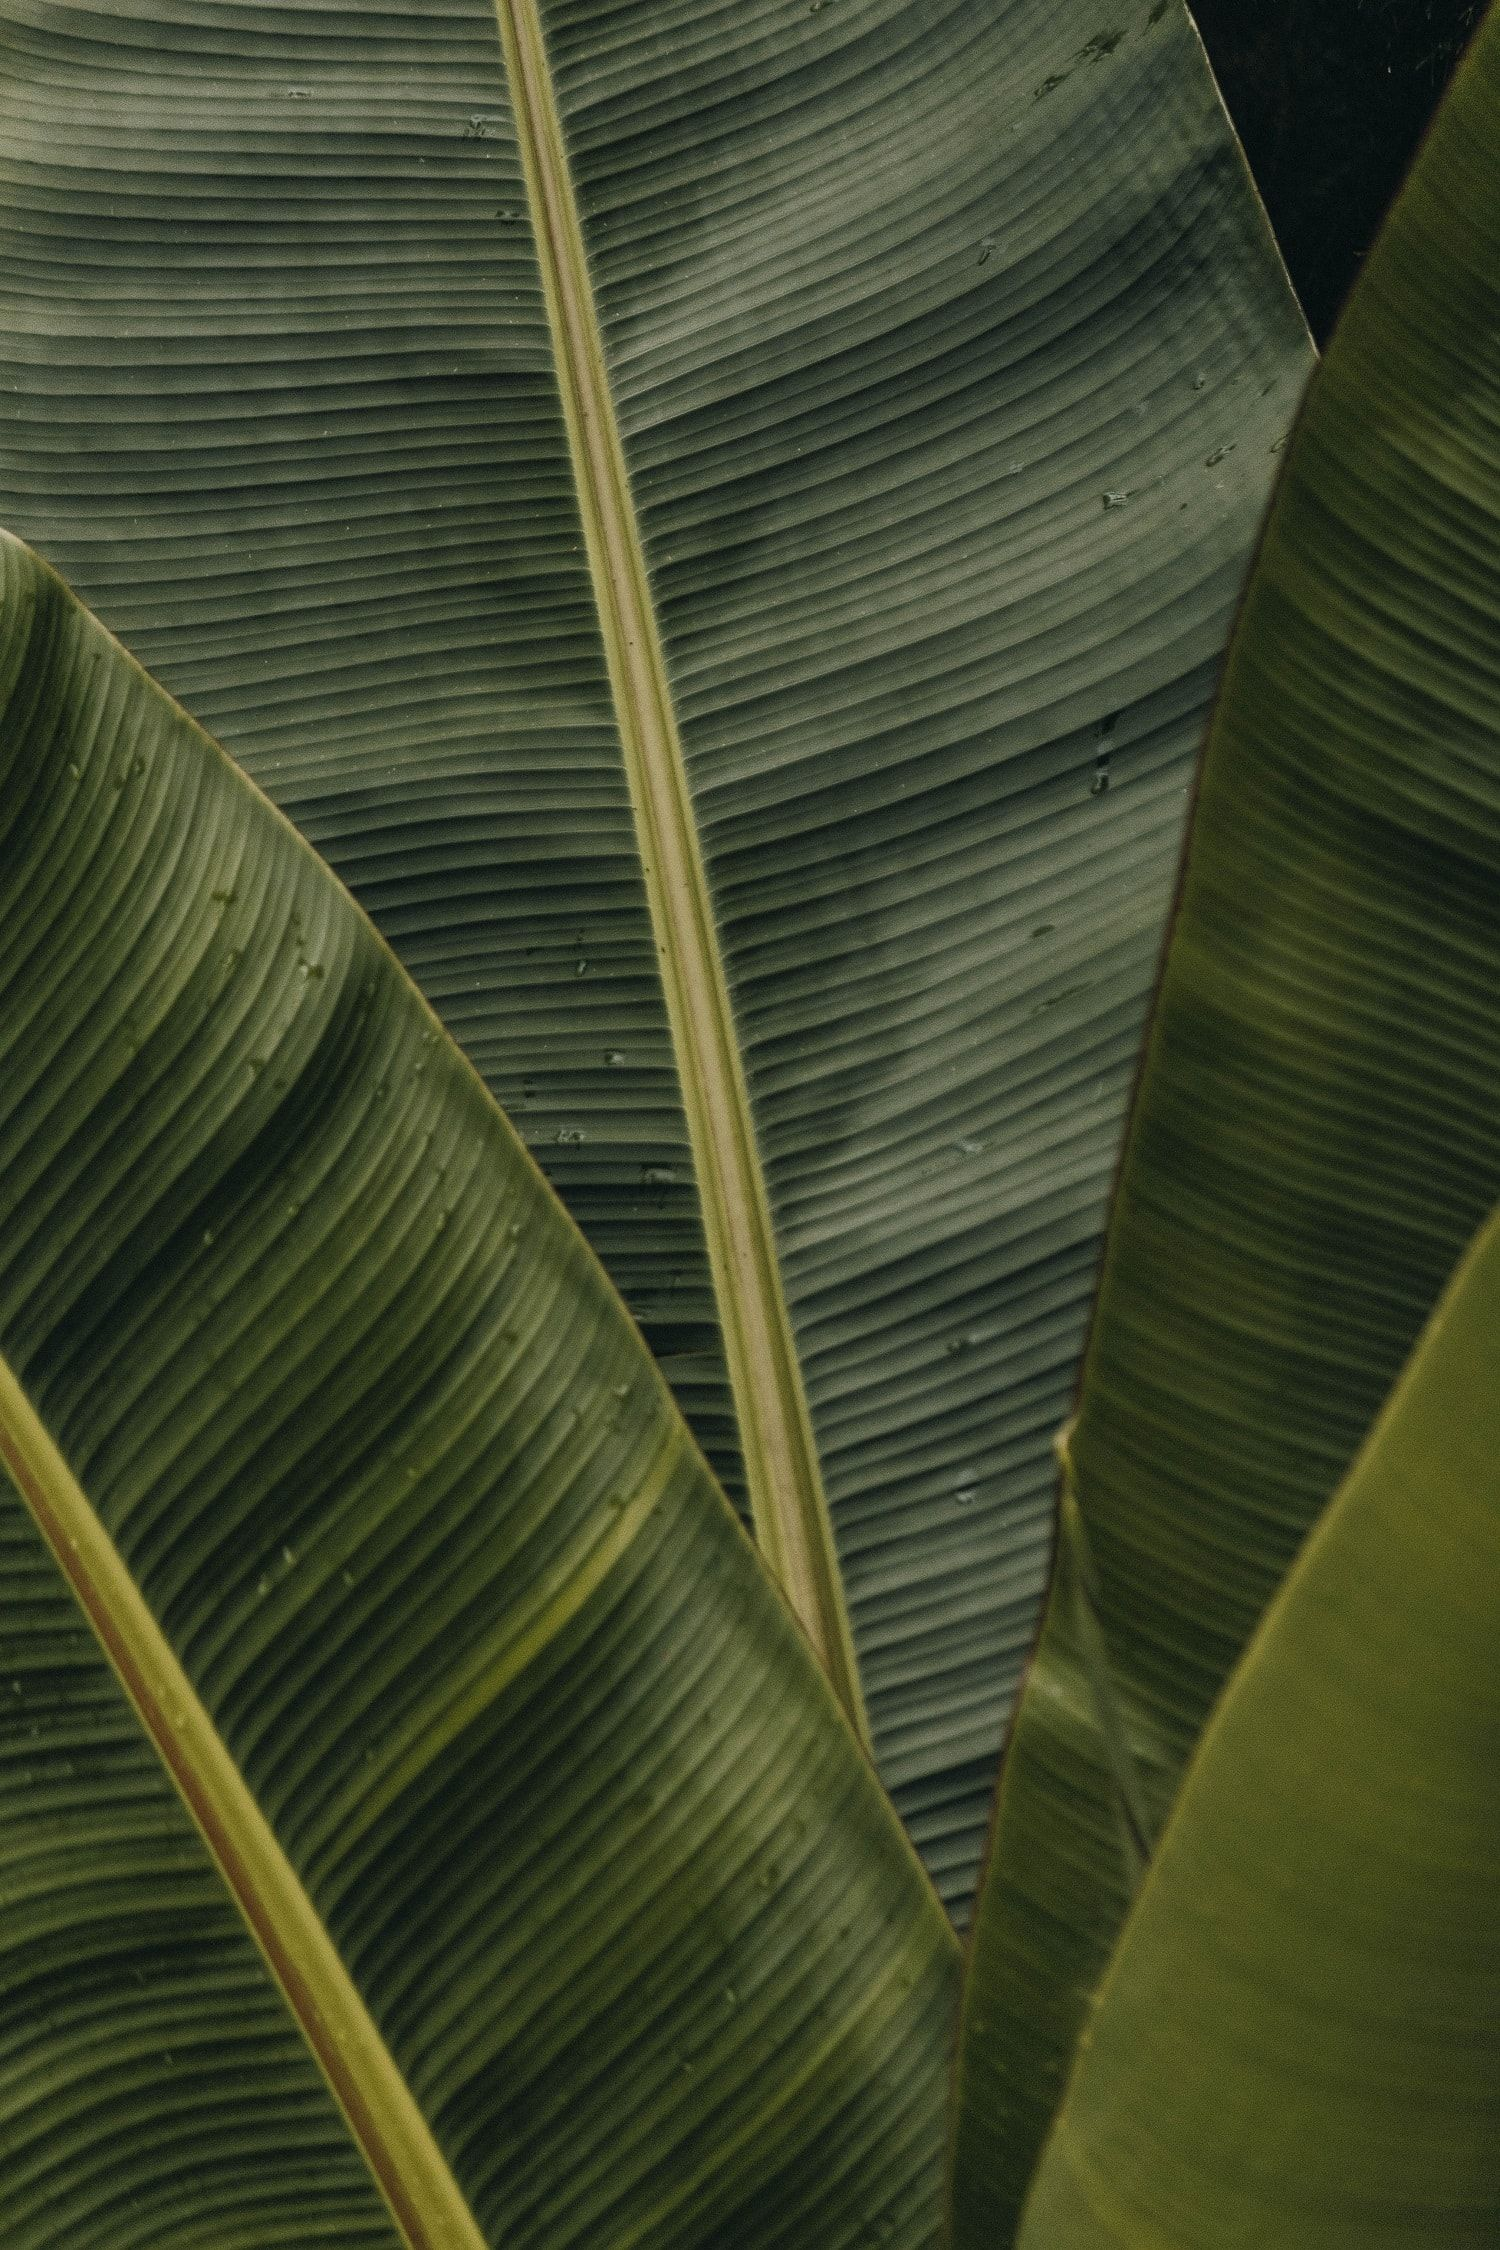 Design Visual Leaf Photography Leaf Texture Green Aesthetic